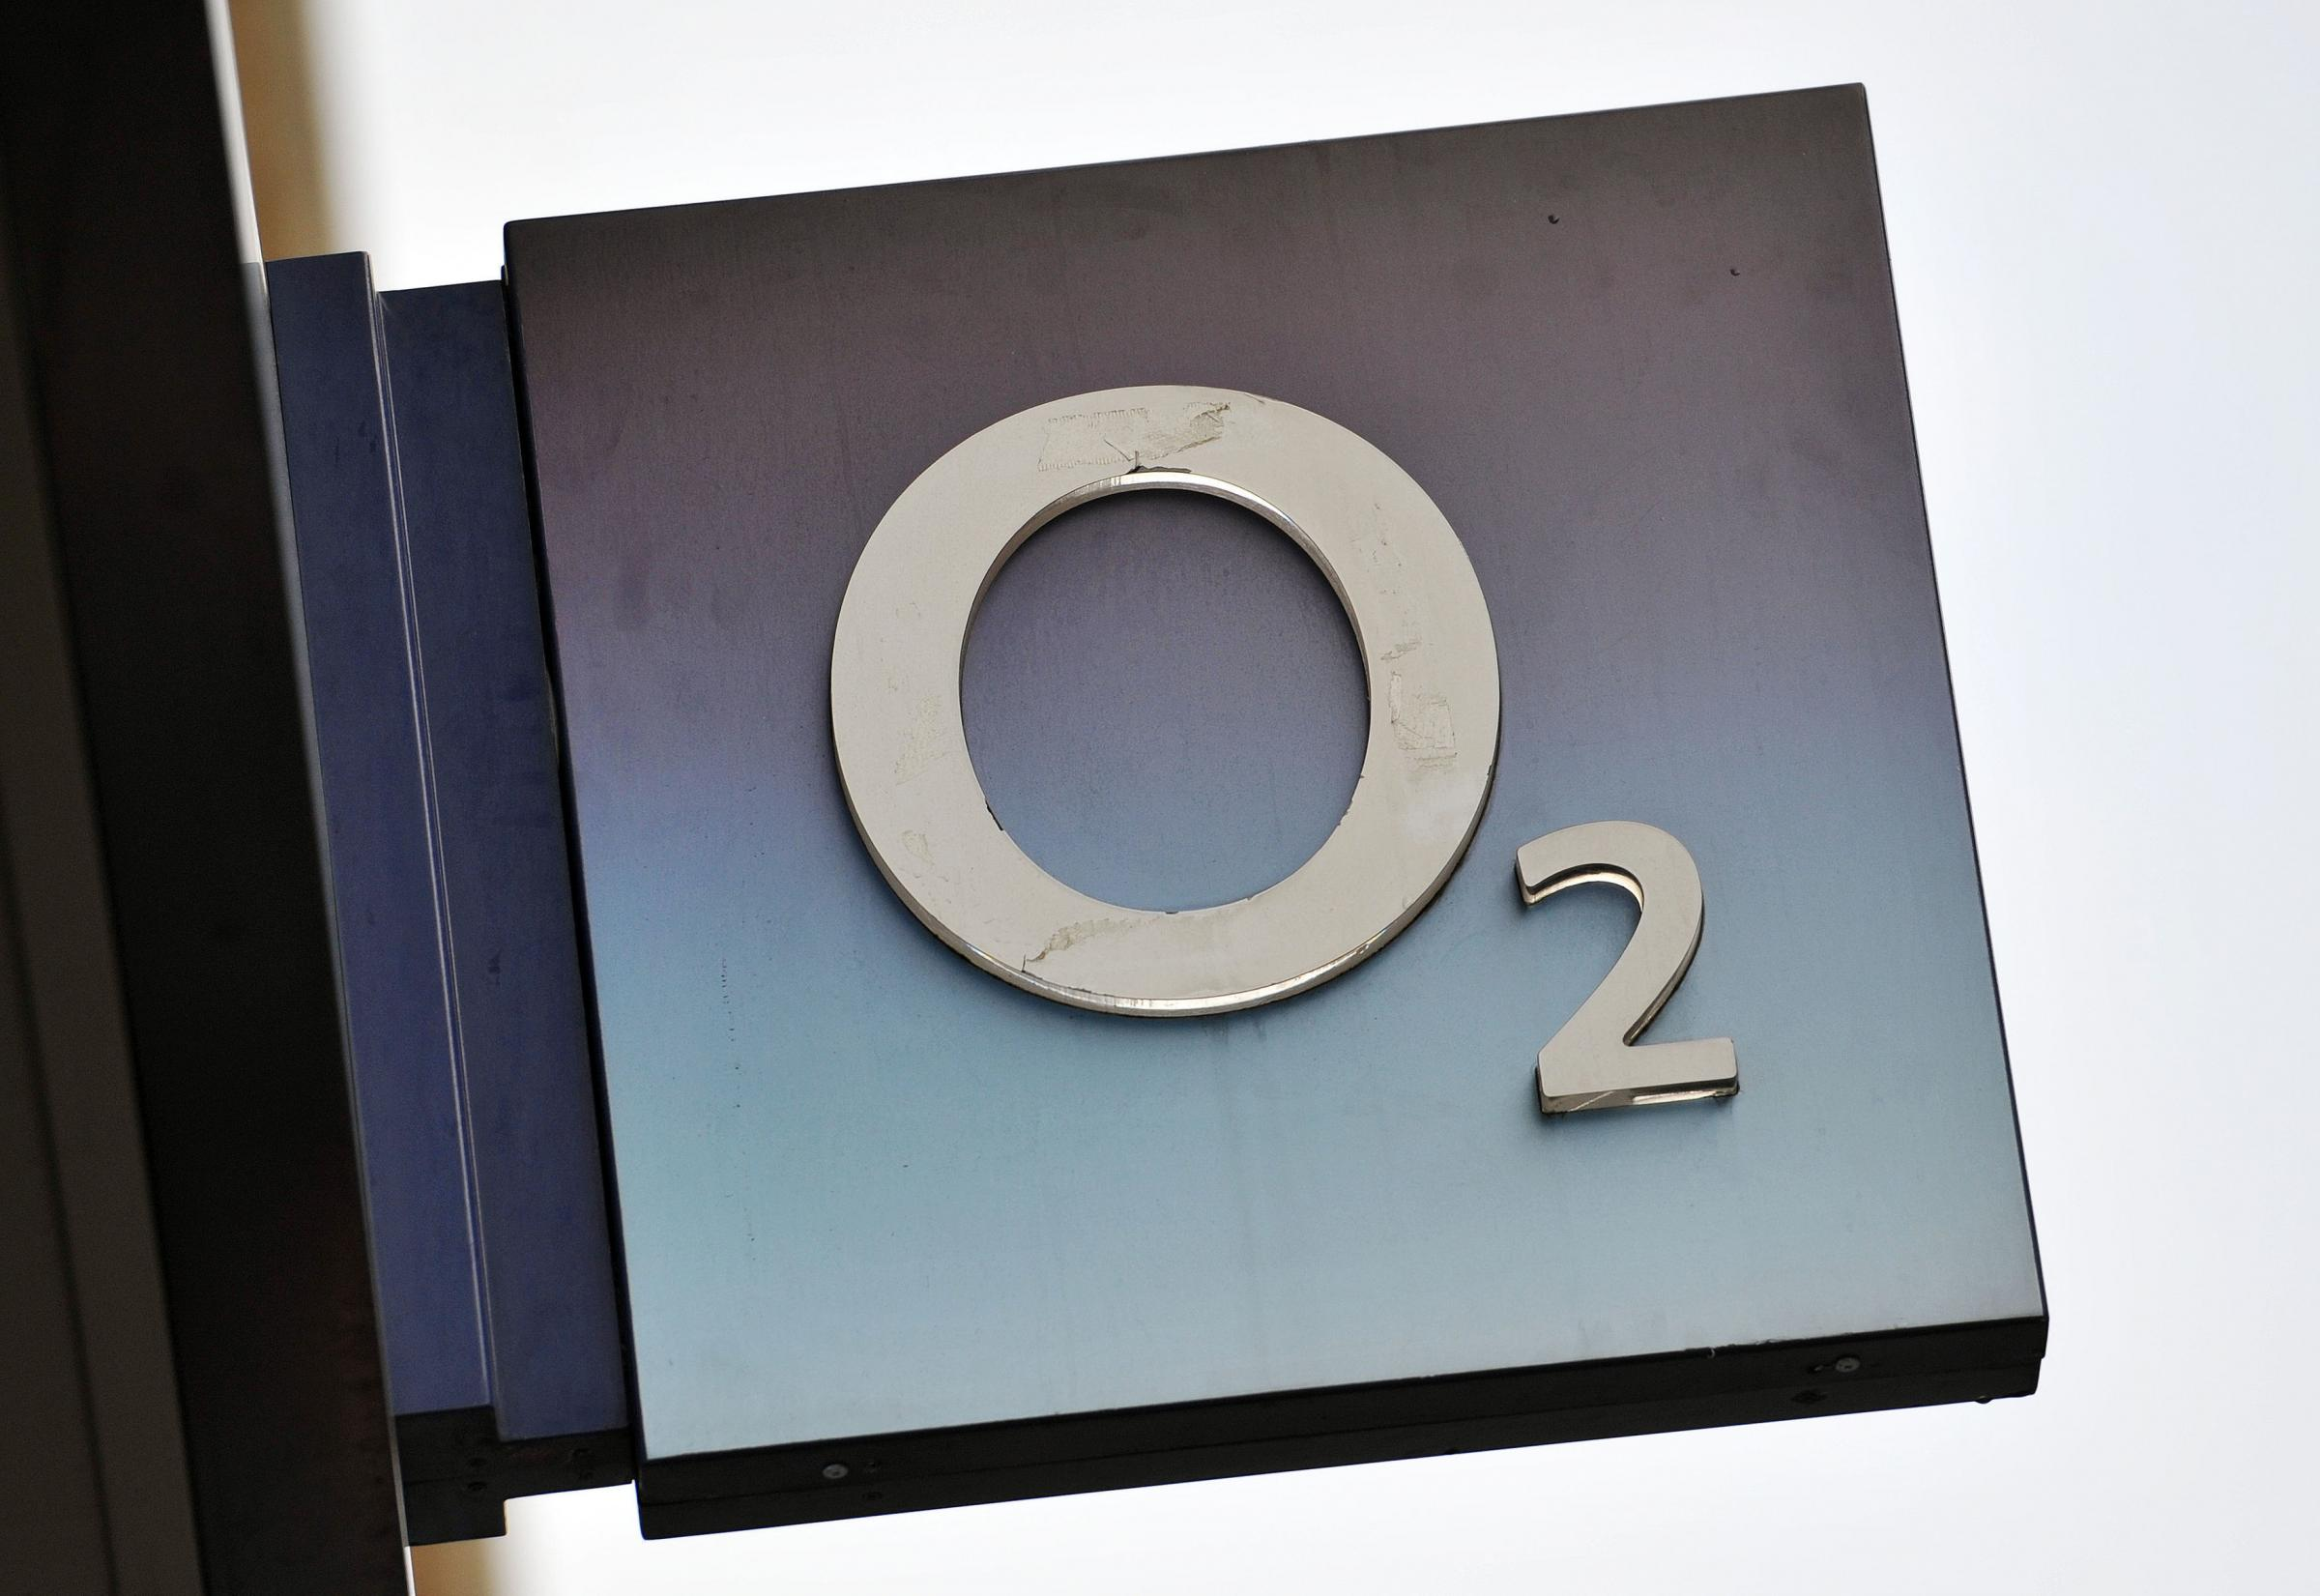 O2 network outage ends: Here's what happened